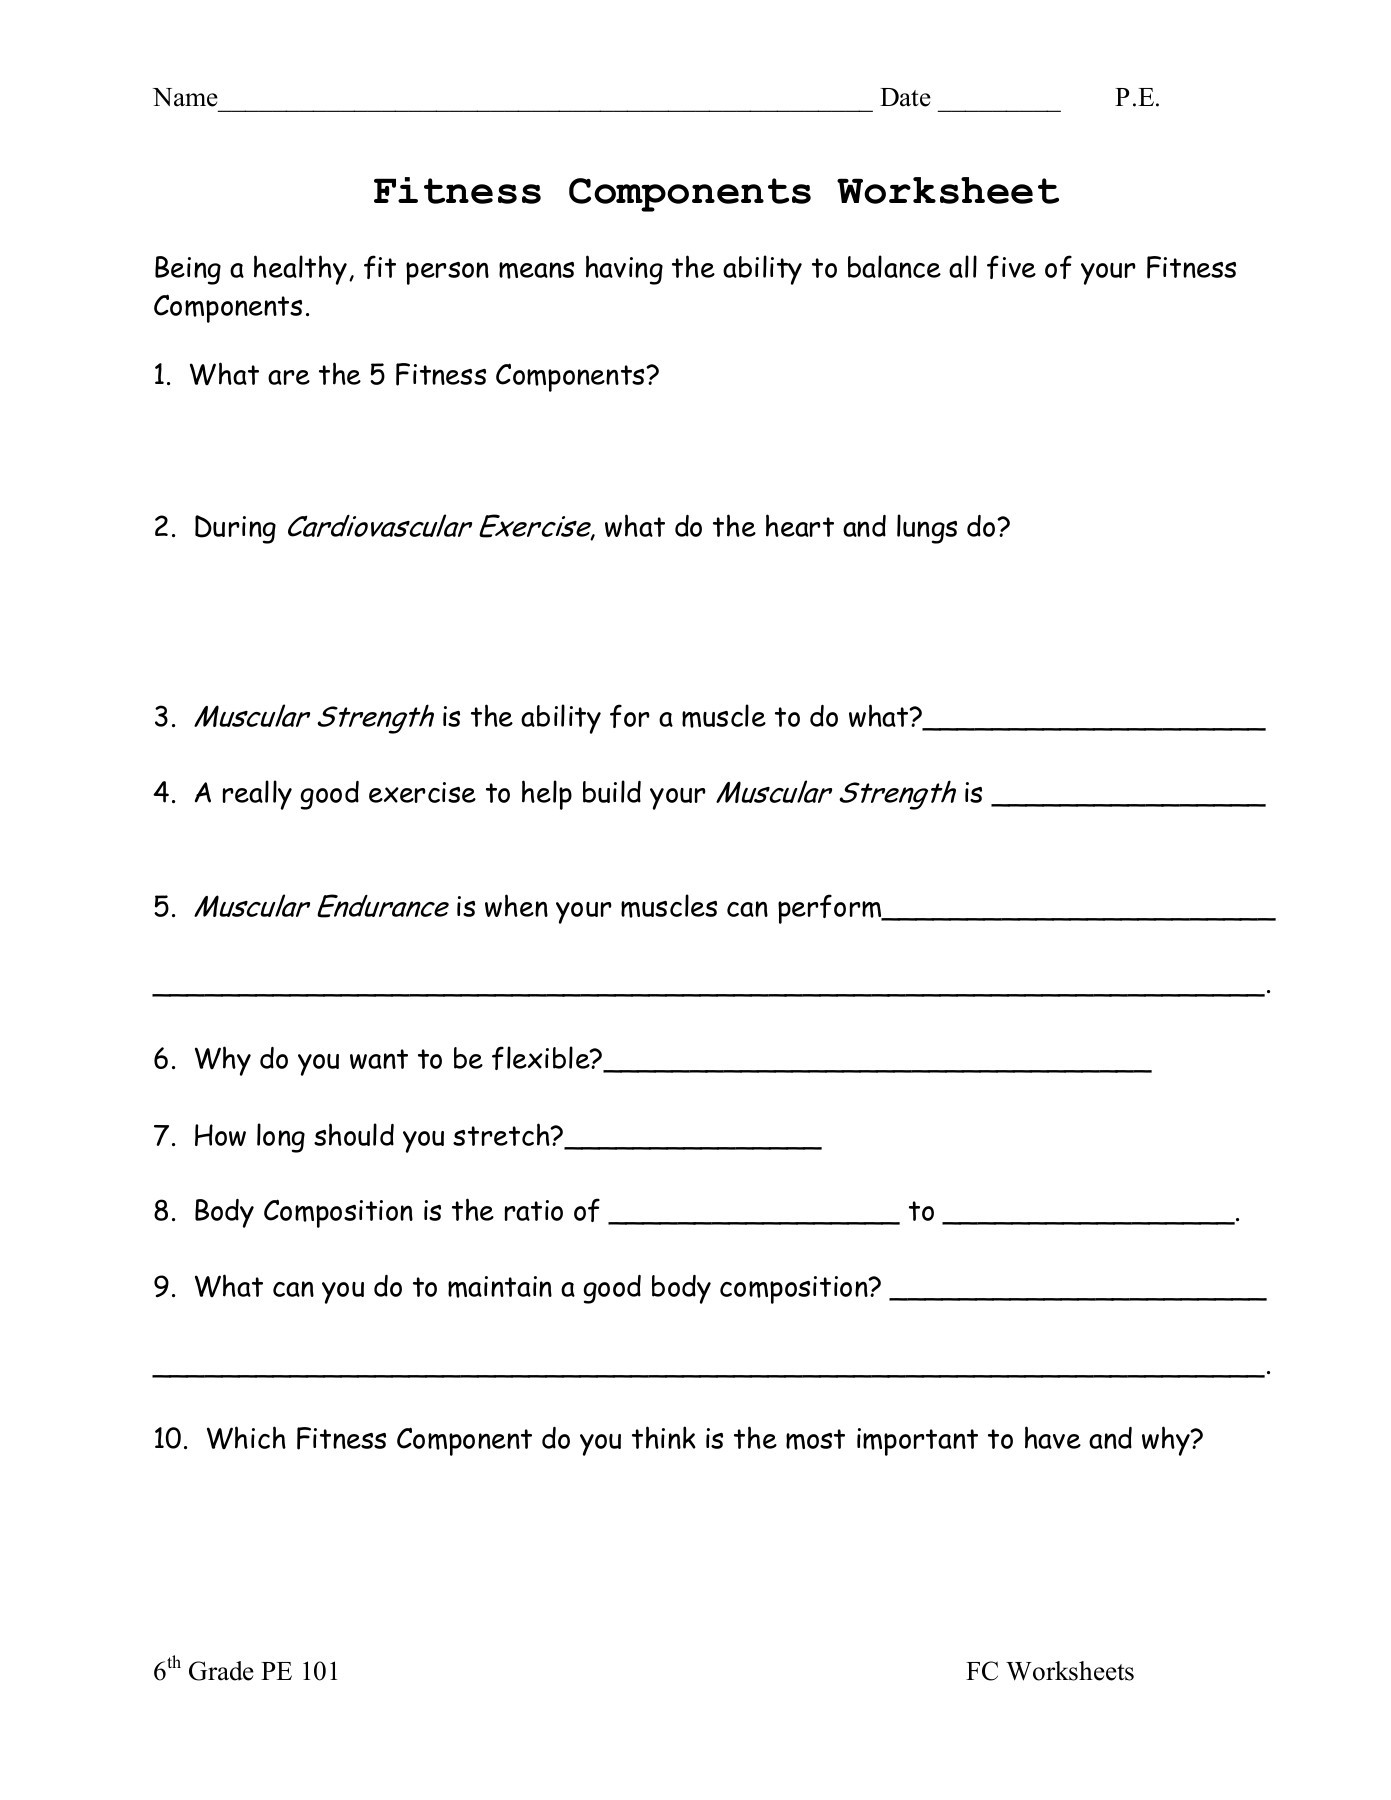 5 Components Of Fitness Worksheet